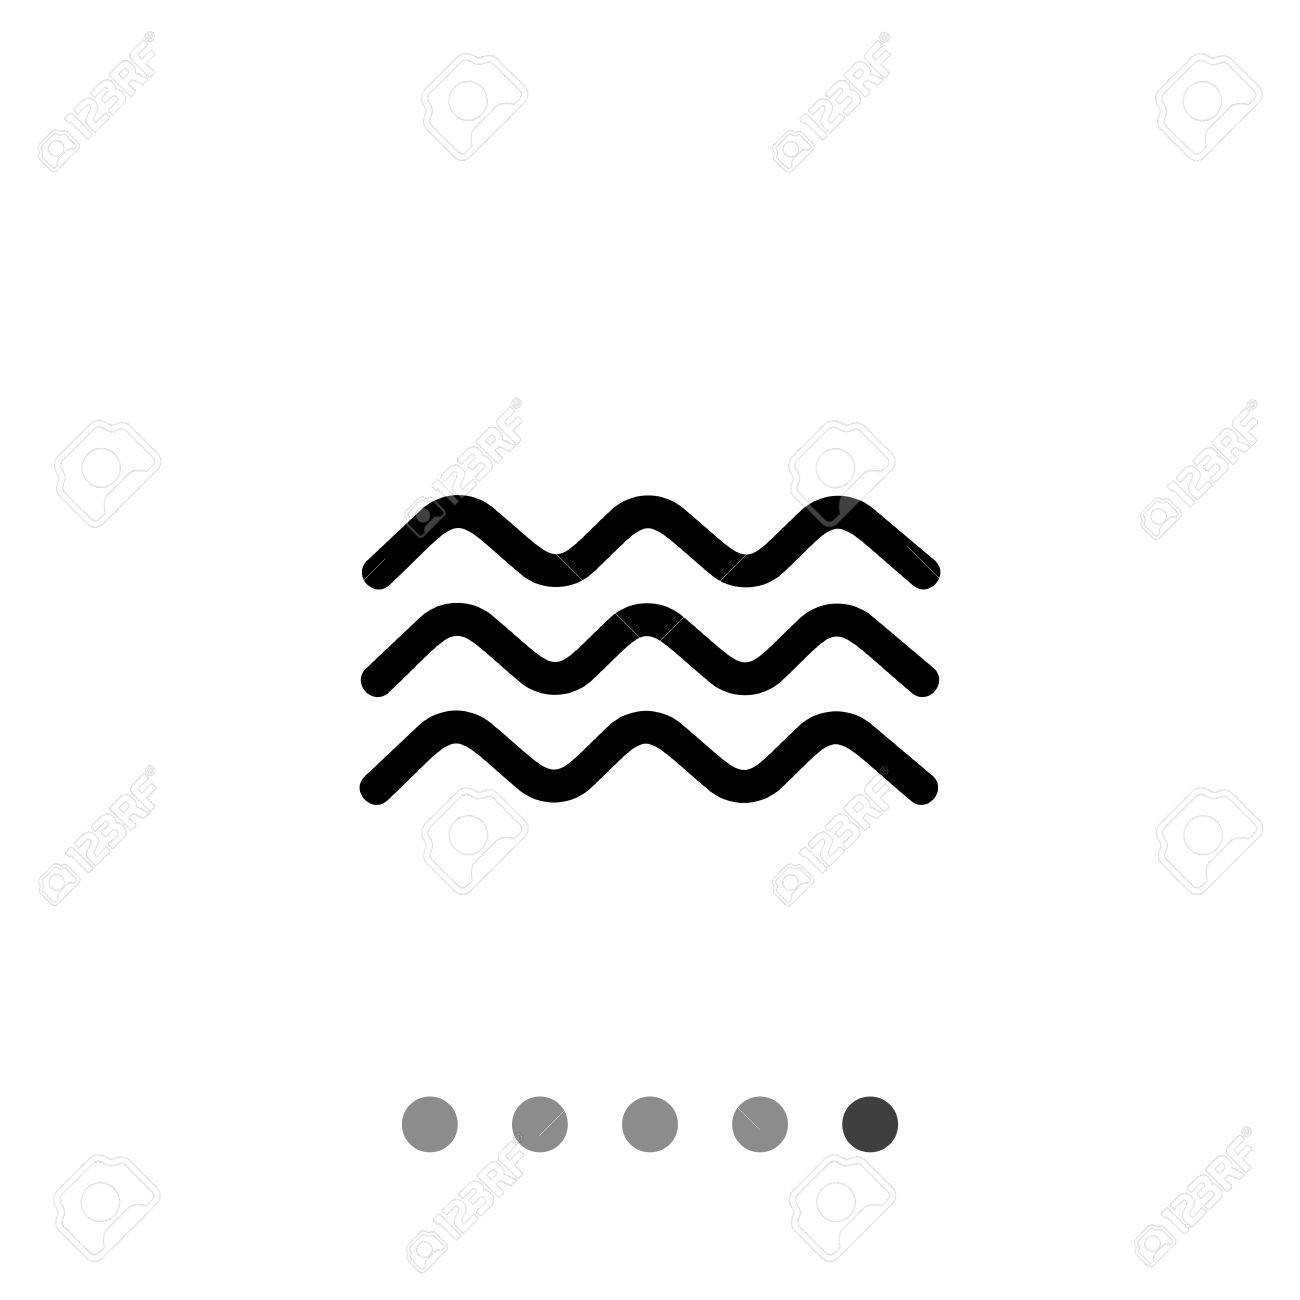 1300x1300 63113277 Monochrome Vector Icon Of Three Squiggly Lines